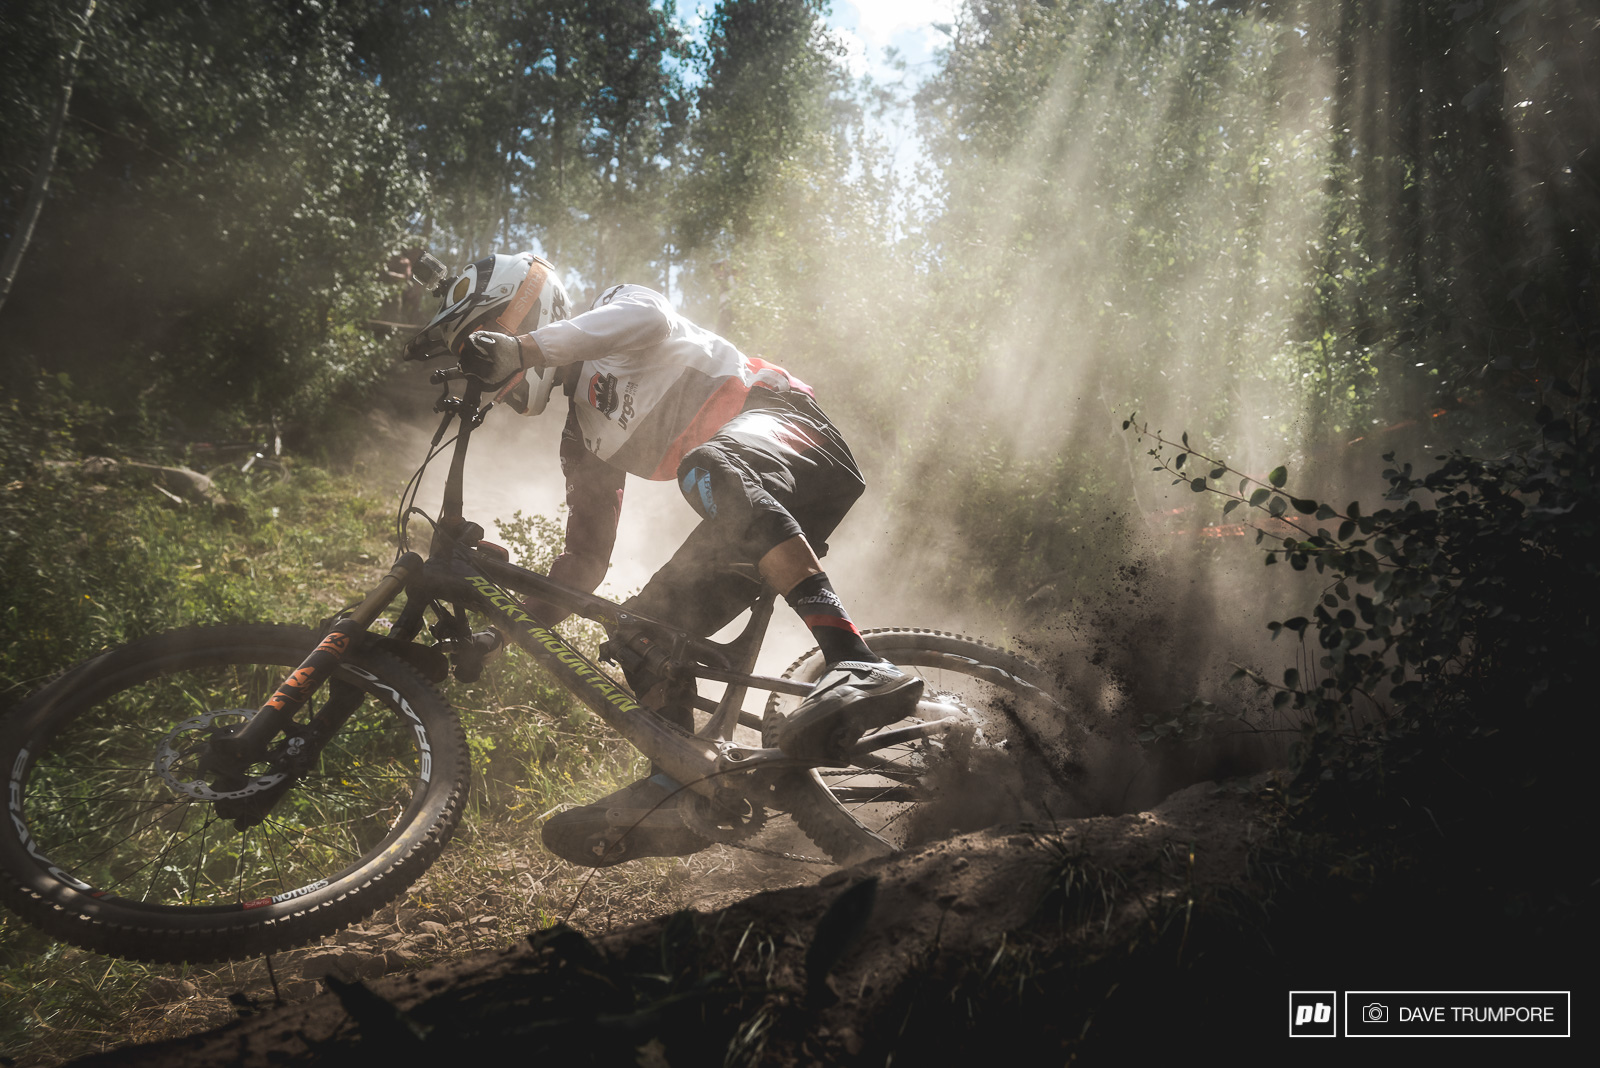 Florian Nicolai powers through the dust and epic light at the bottom of stage 6.